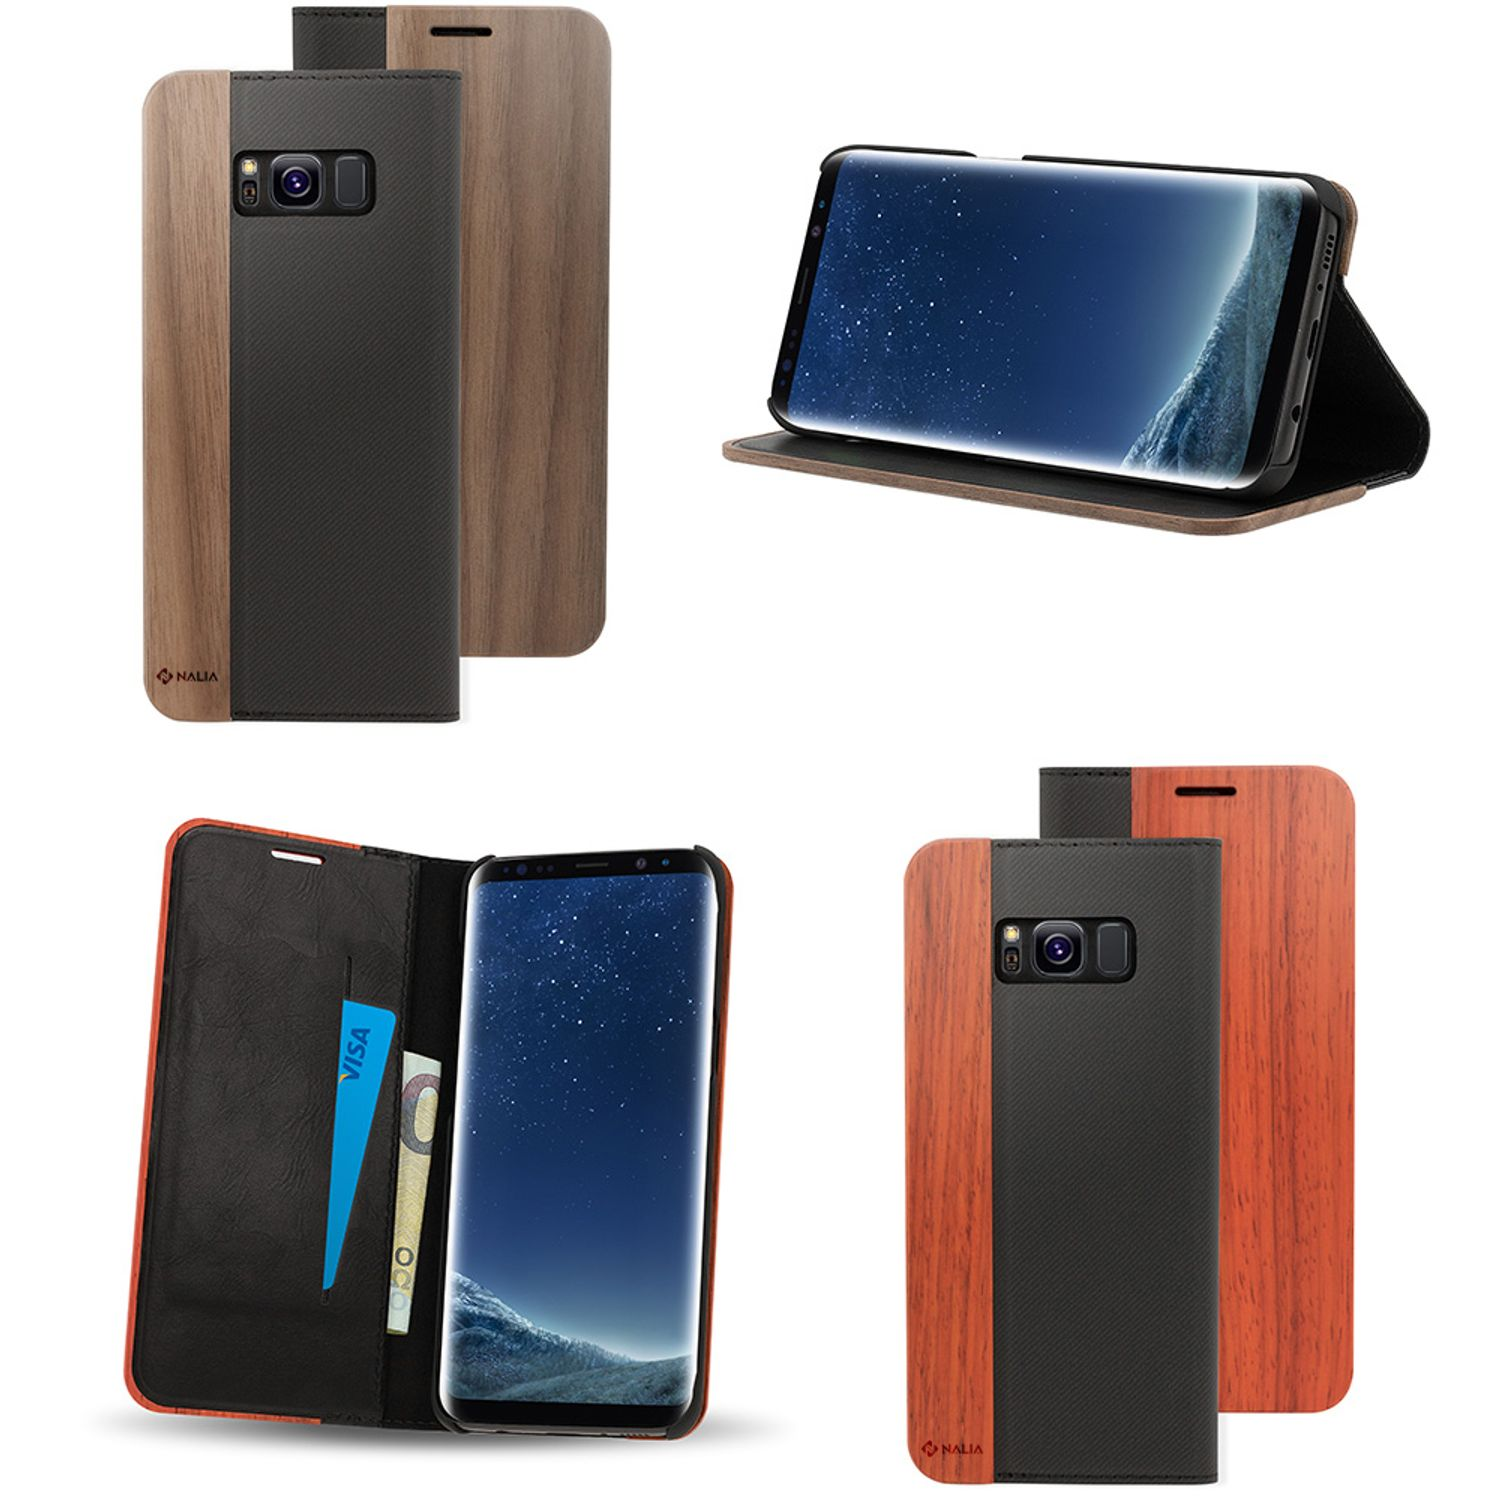 outlet store 10b47 3ede6 Details about Samsung Galaxy S8 Wood Case by NALIA, Ultra Thin Handmade  Wooden Phone Cover